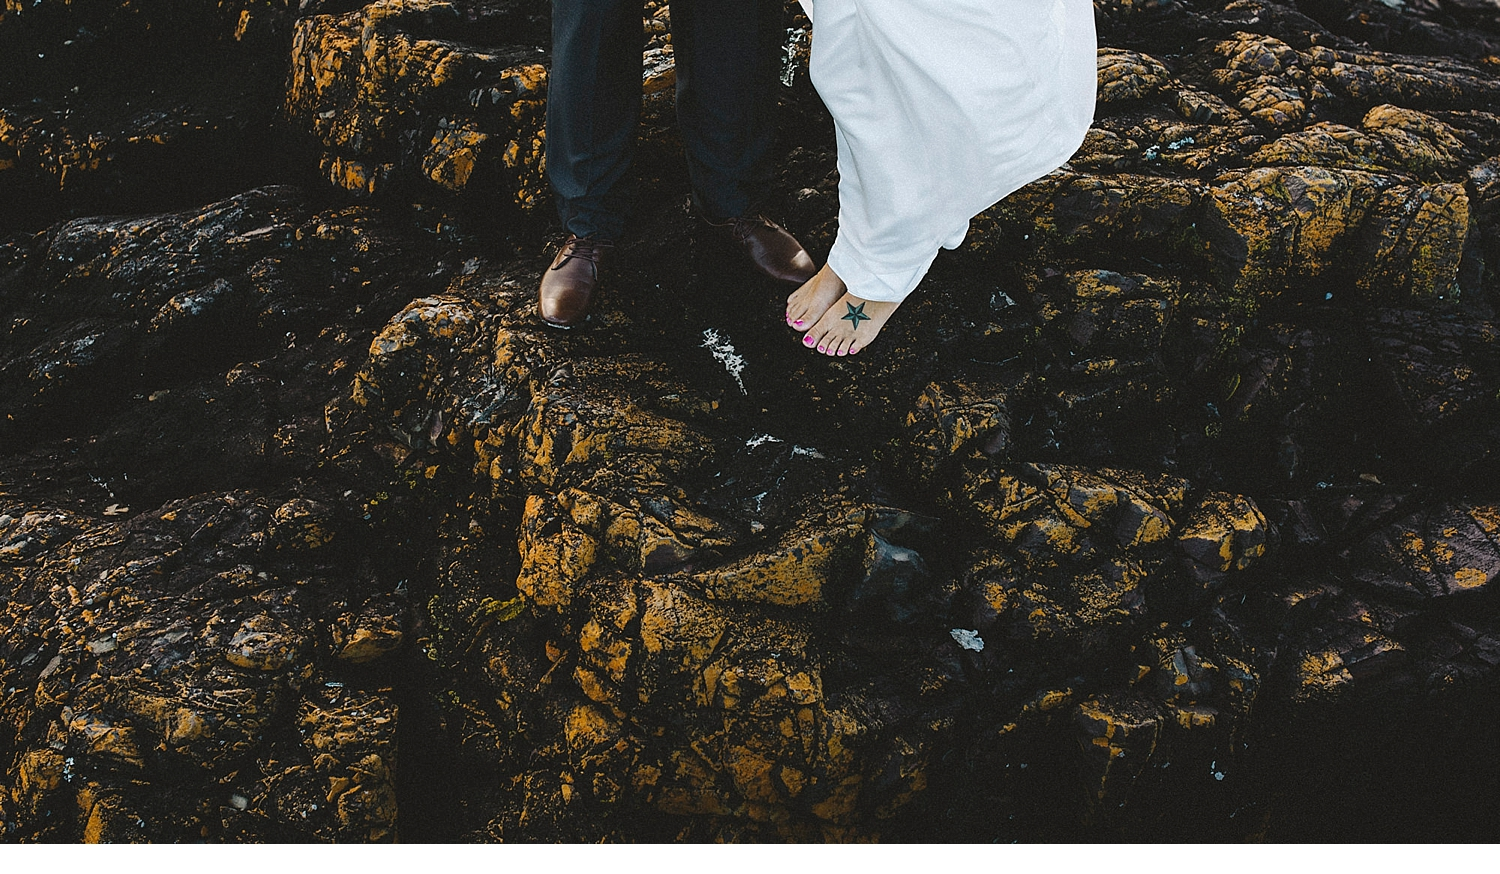 Holly_And_Josh_Morgan_Roberts_Photography 0008.JPG